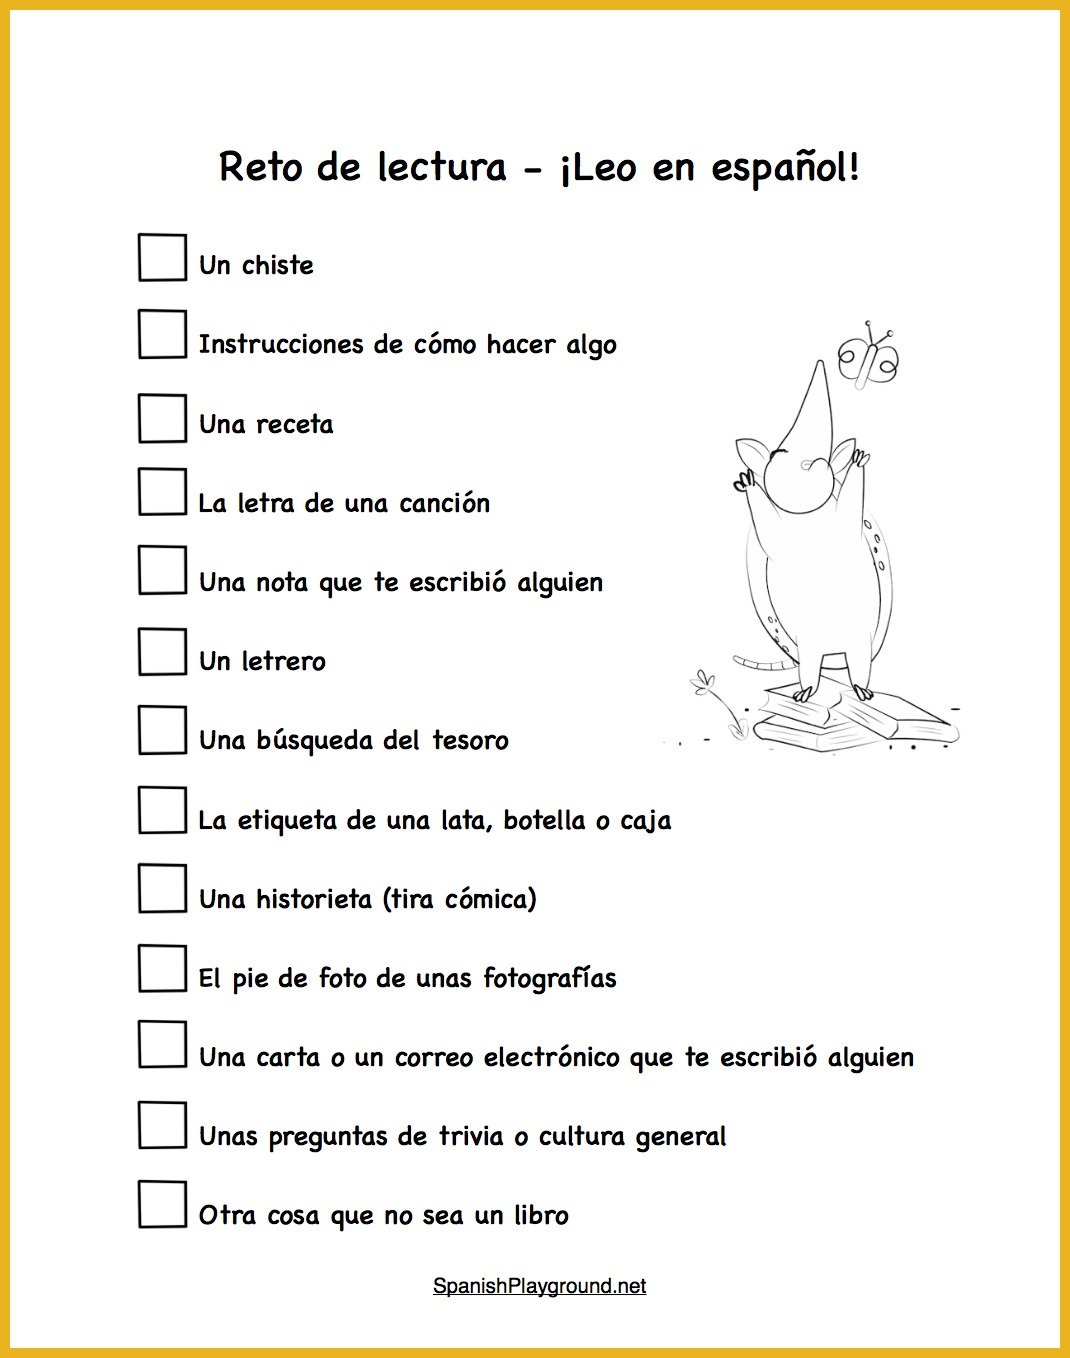 Spanish reading practice 15 things to read spanish playground a reading challenge to encourage kids to practice reading in spanish madrichimfo Images